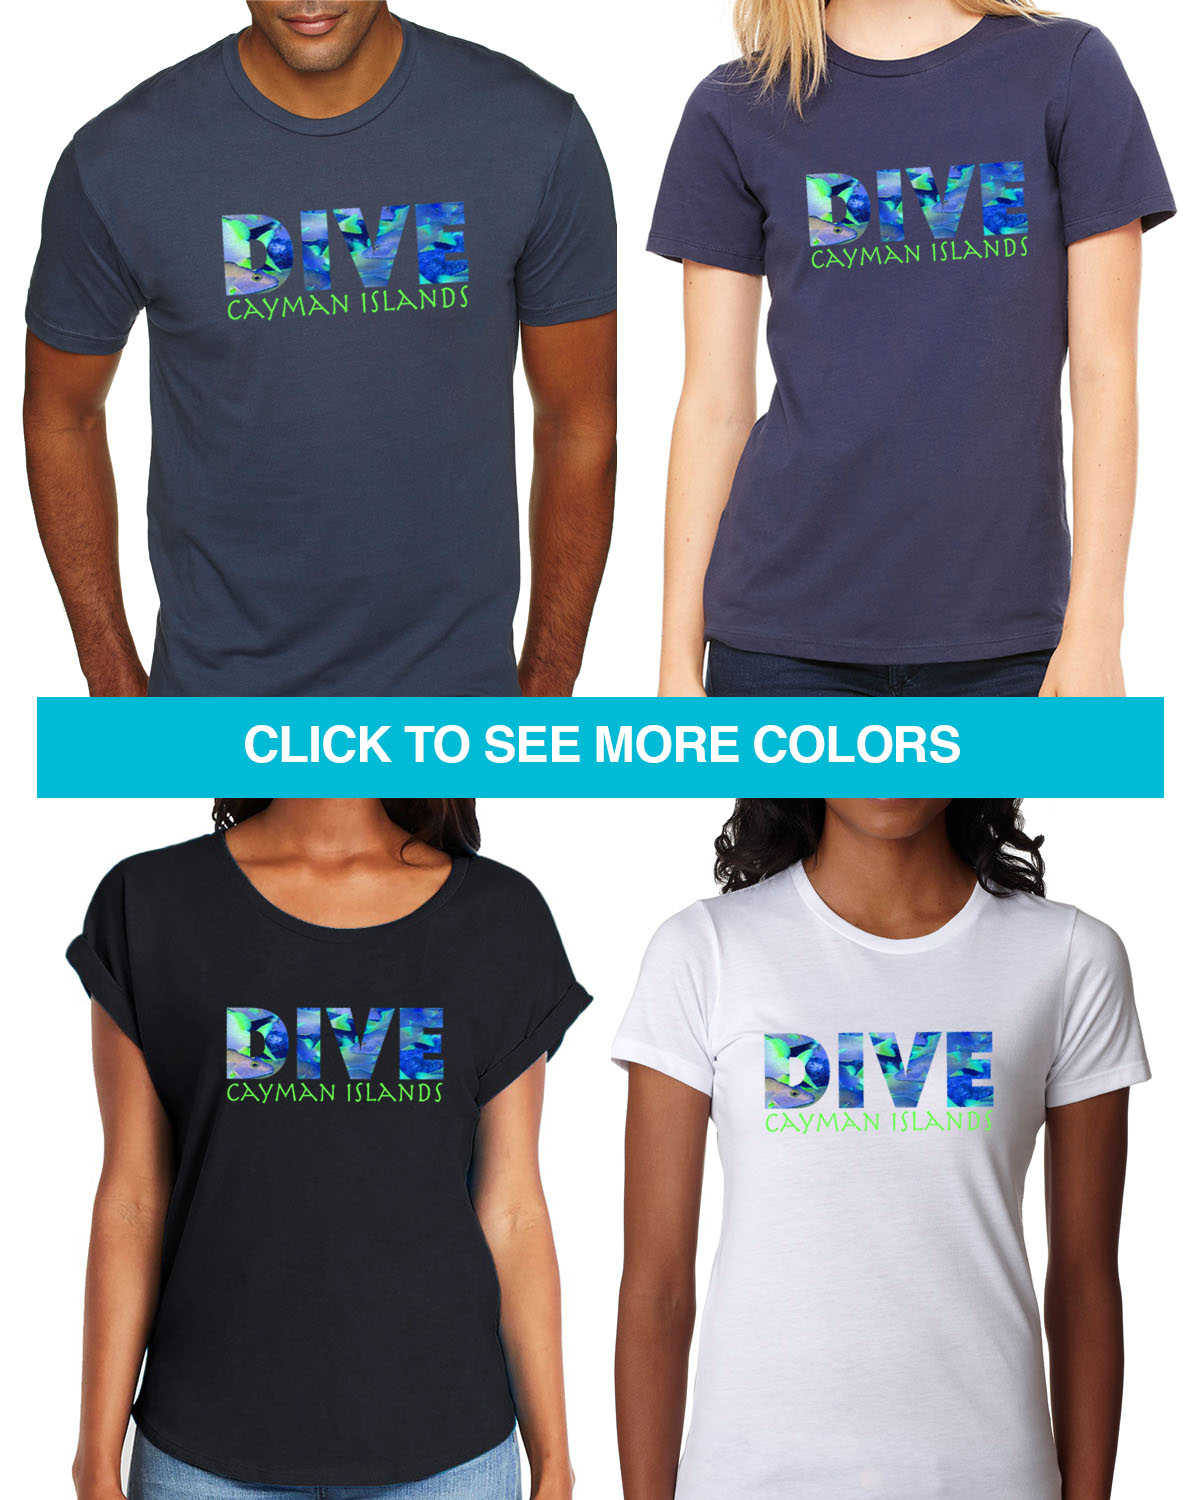 DIVE Cayman Islands Tees for Men & Women